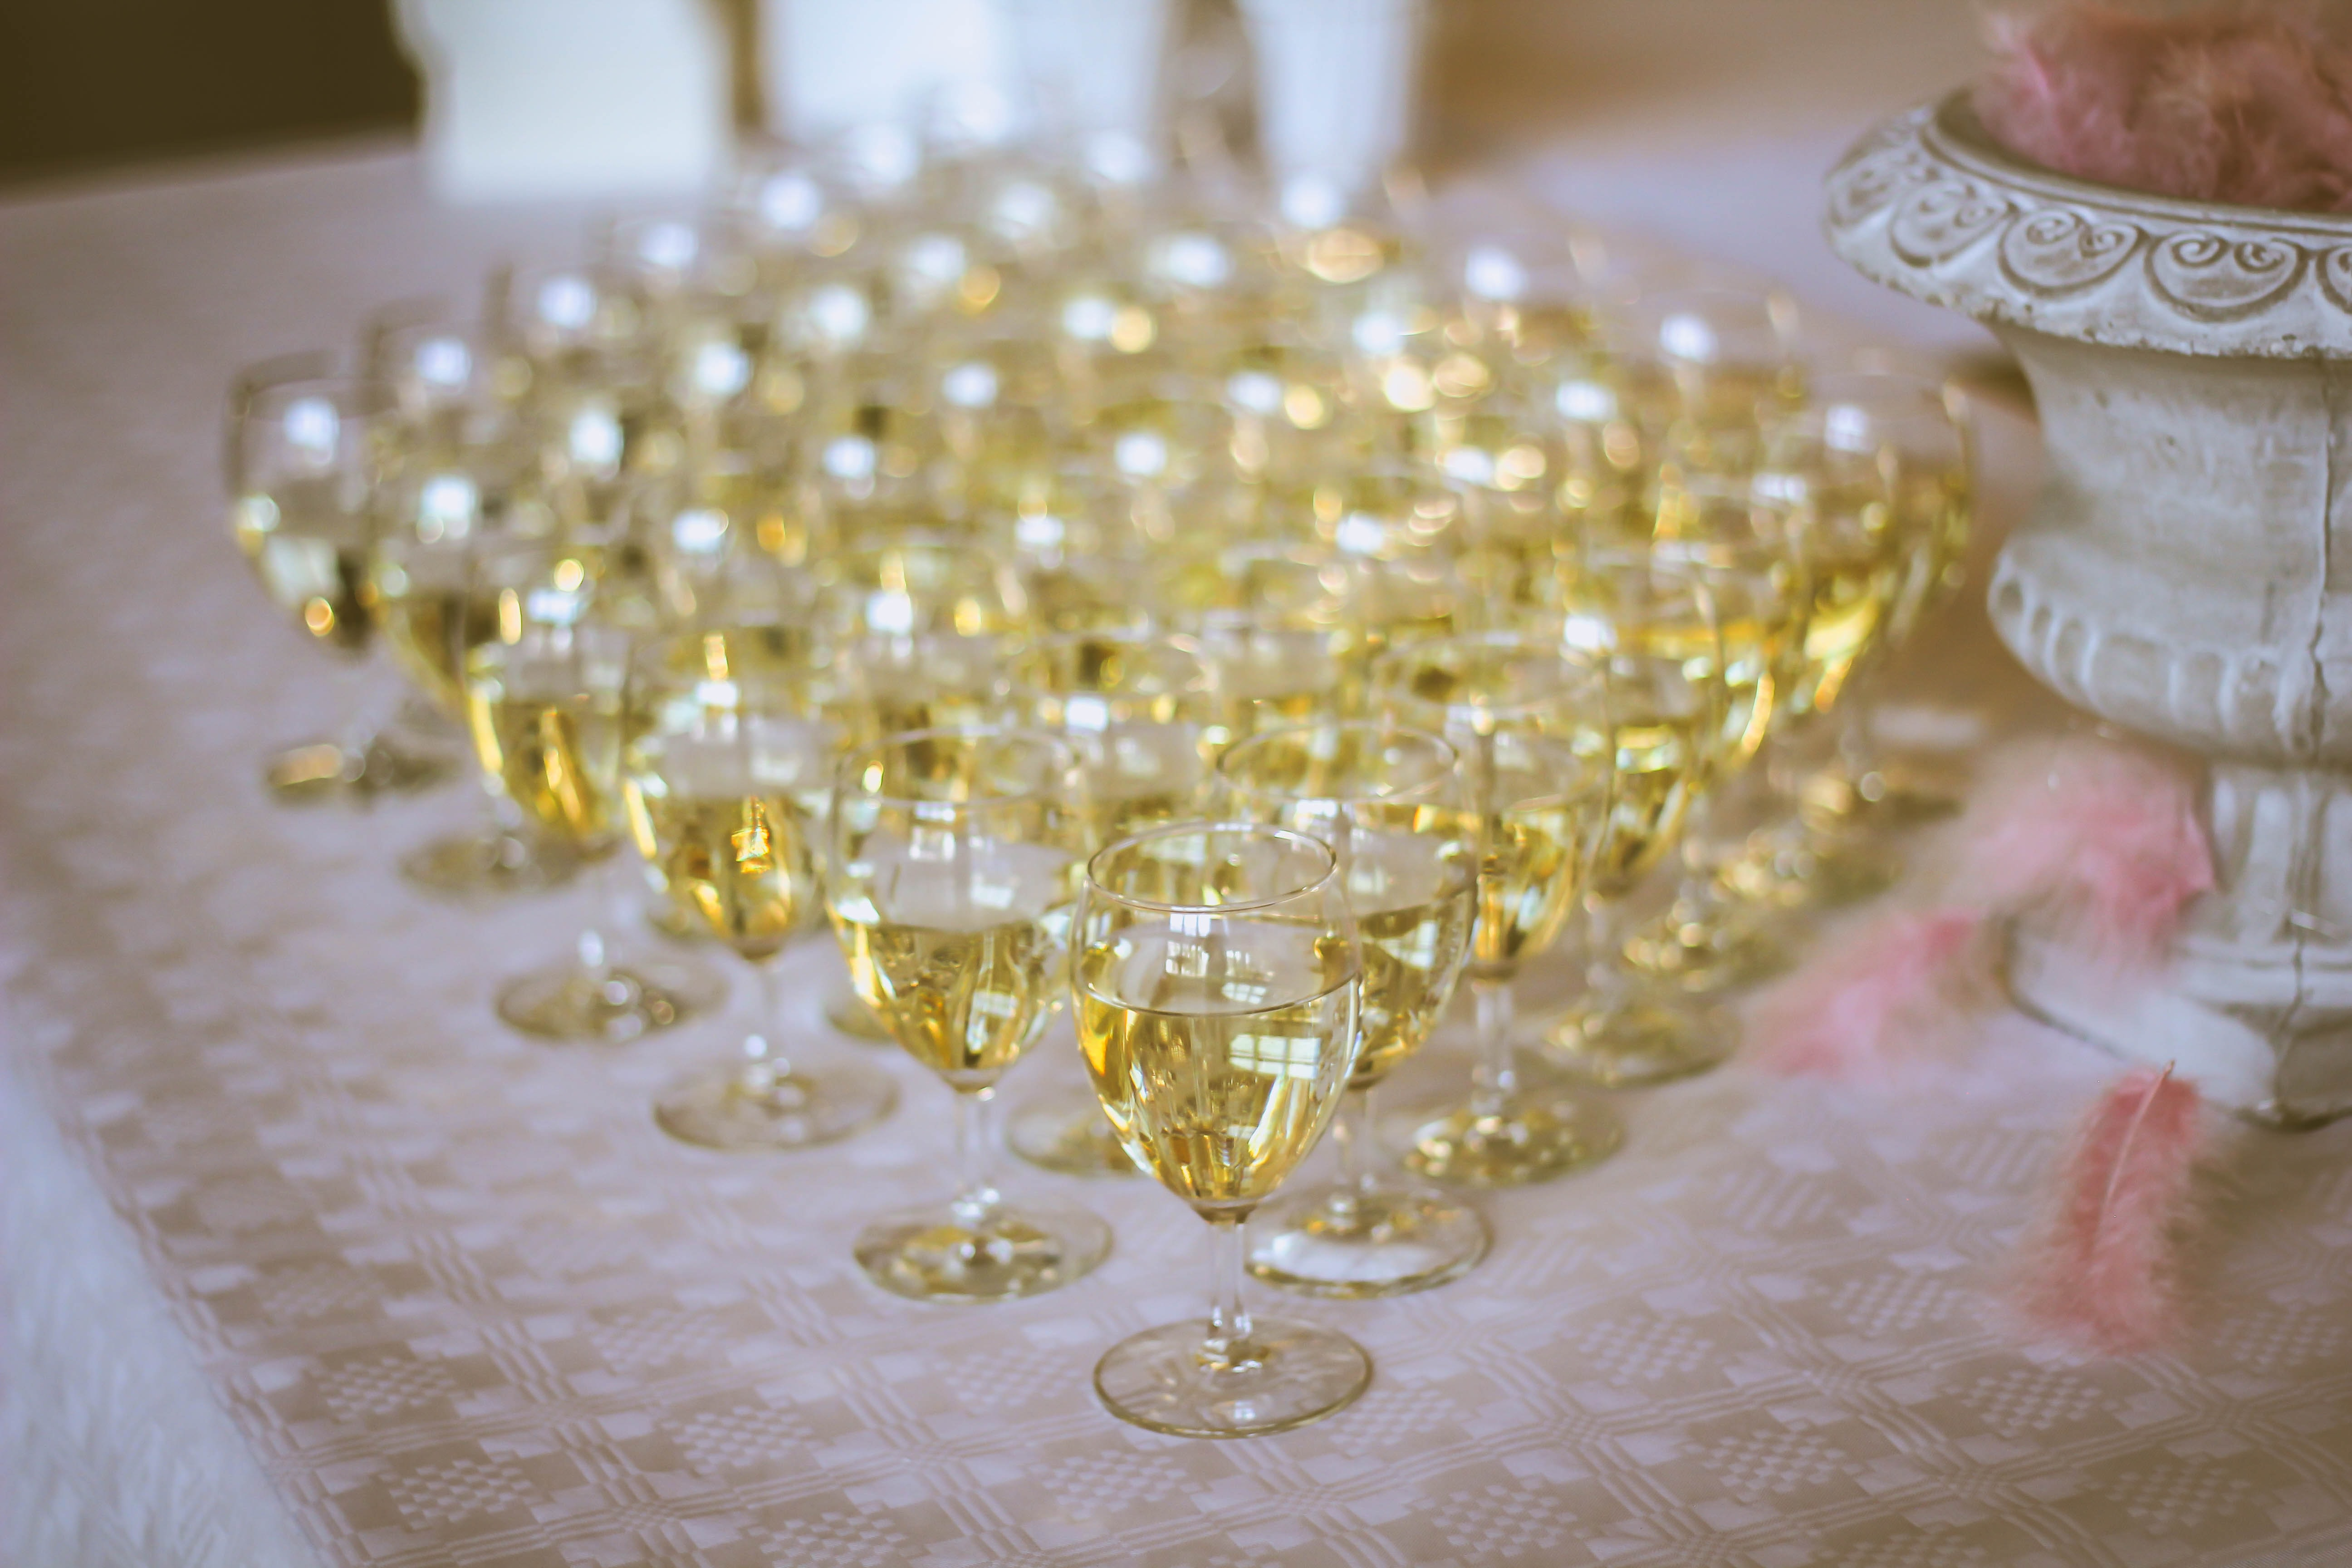 Glasses of champagne on a table.